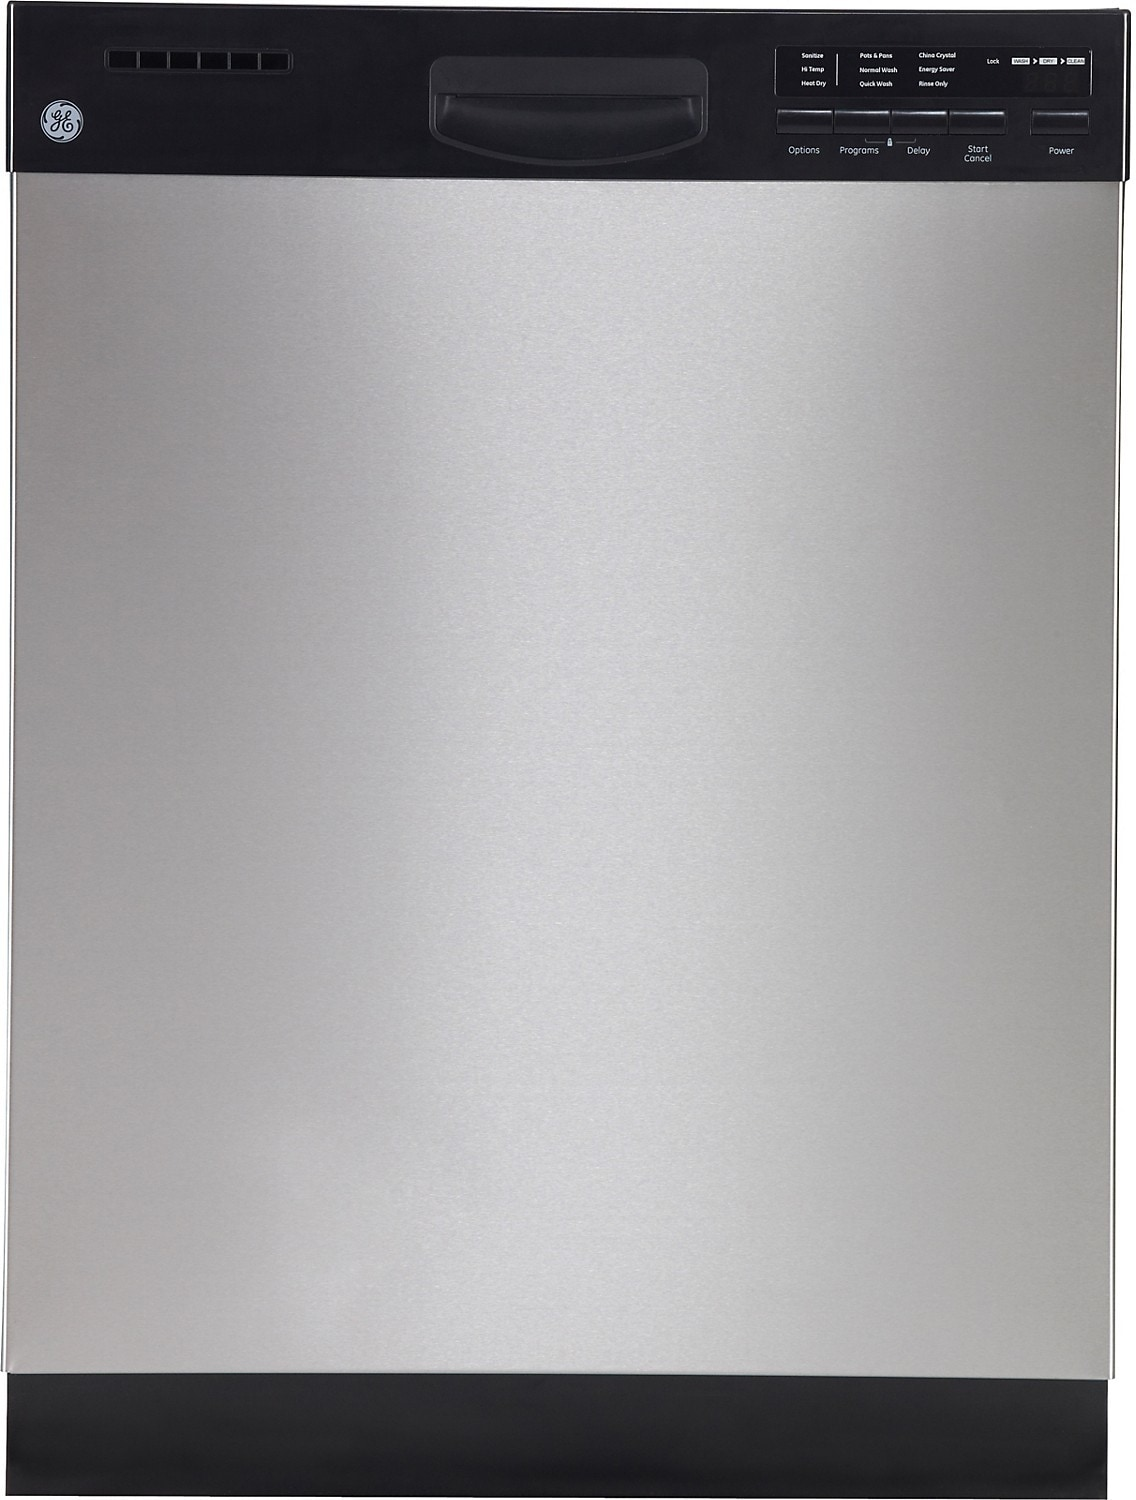 "Clean-Up - GE 24"" Built-In Dishwasher with QuietMotor™ - Stainless Steel"